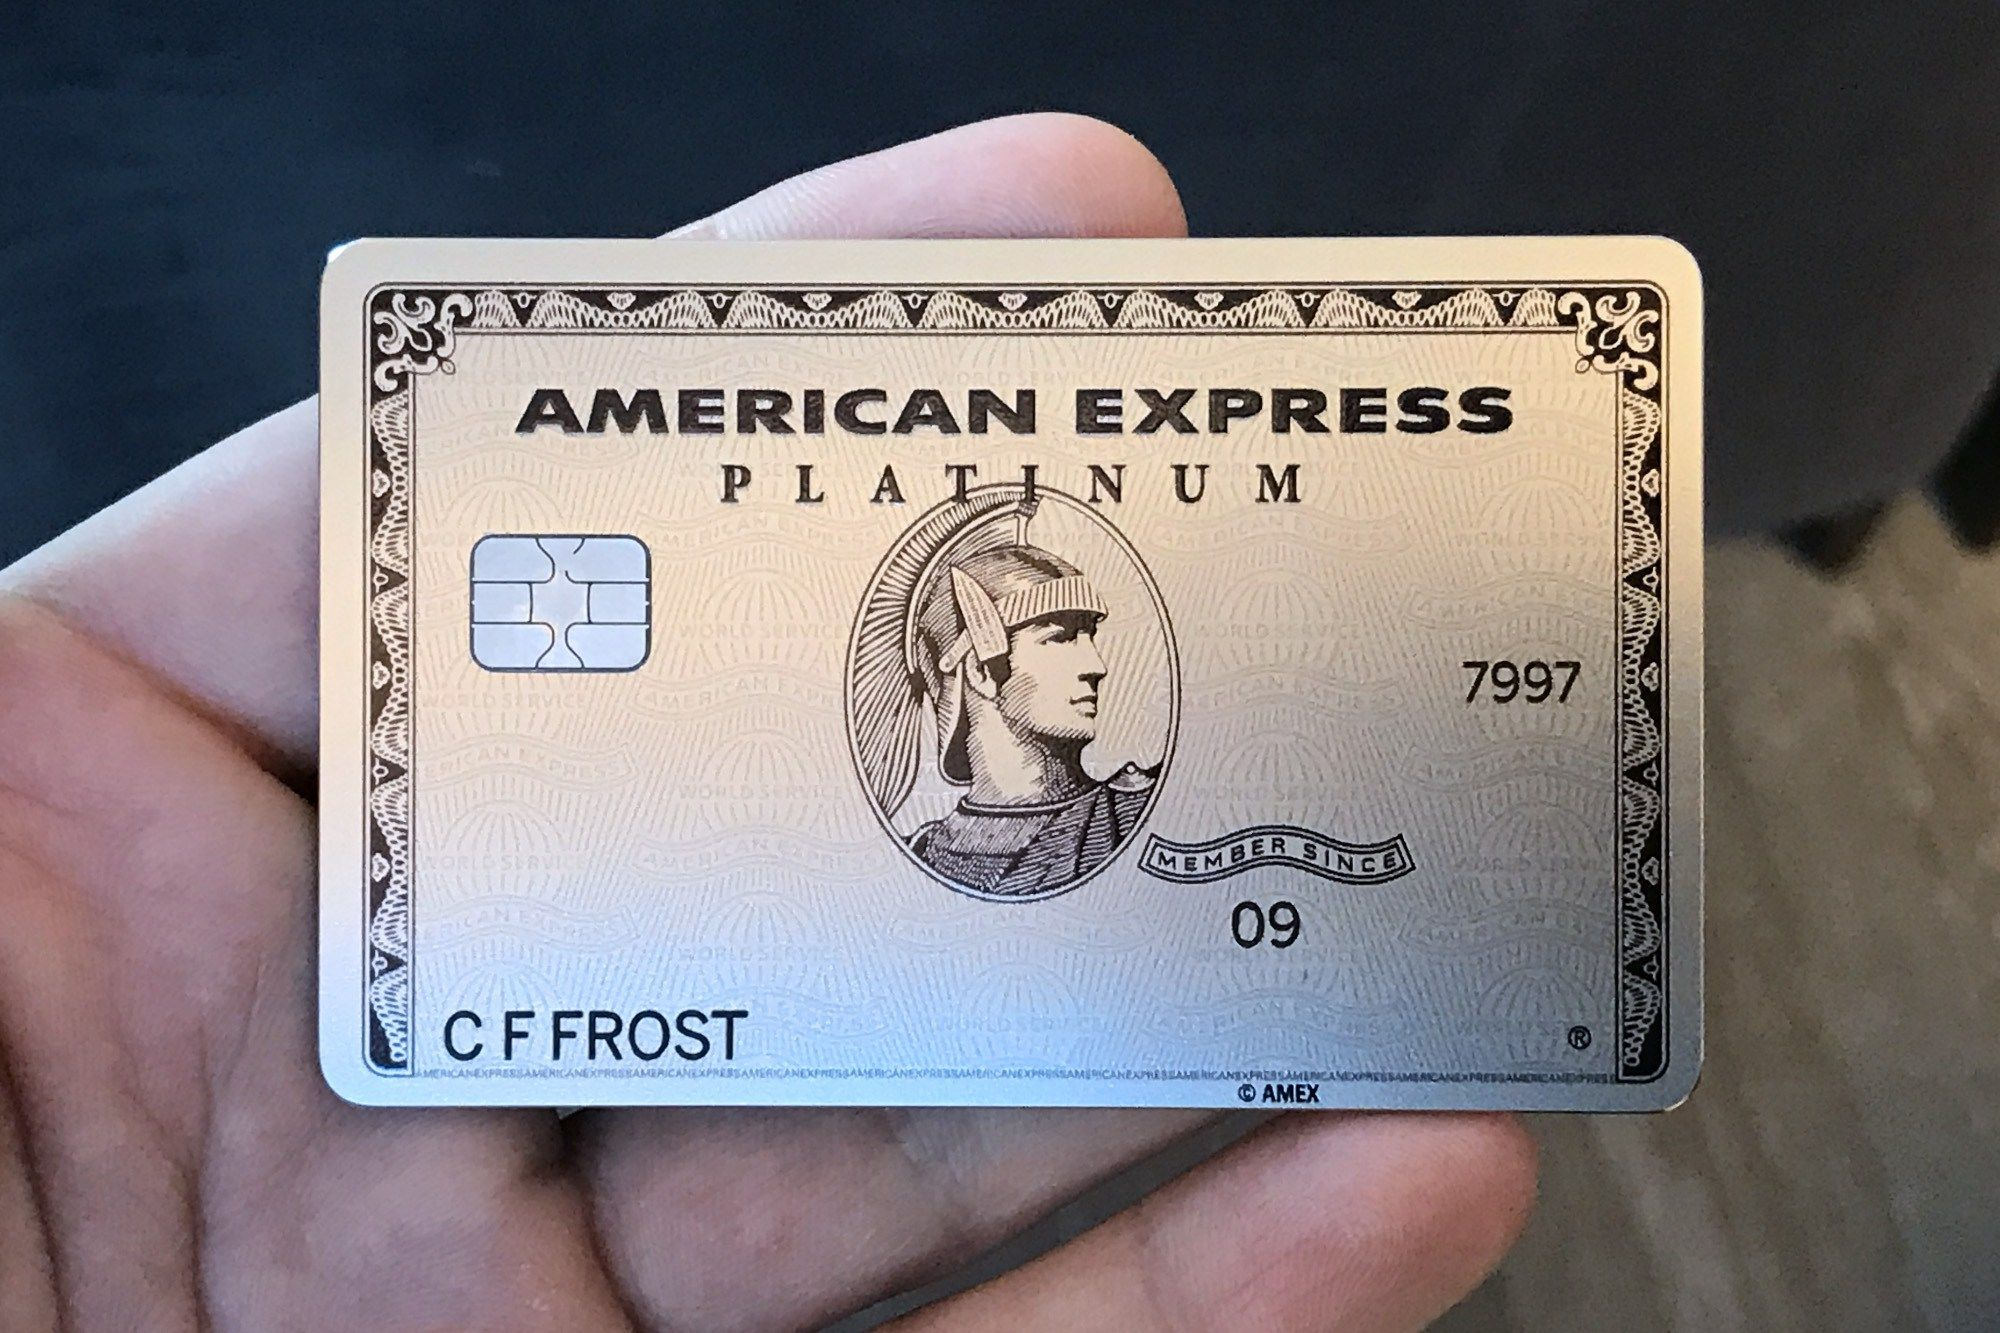 How To Get Priority Pass With American Express Platinum